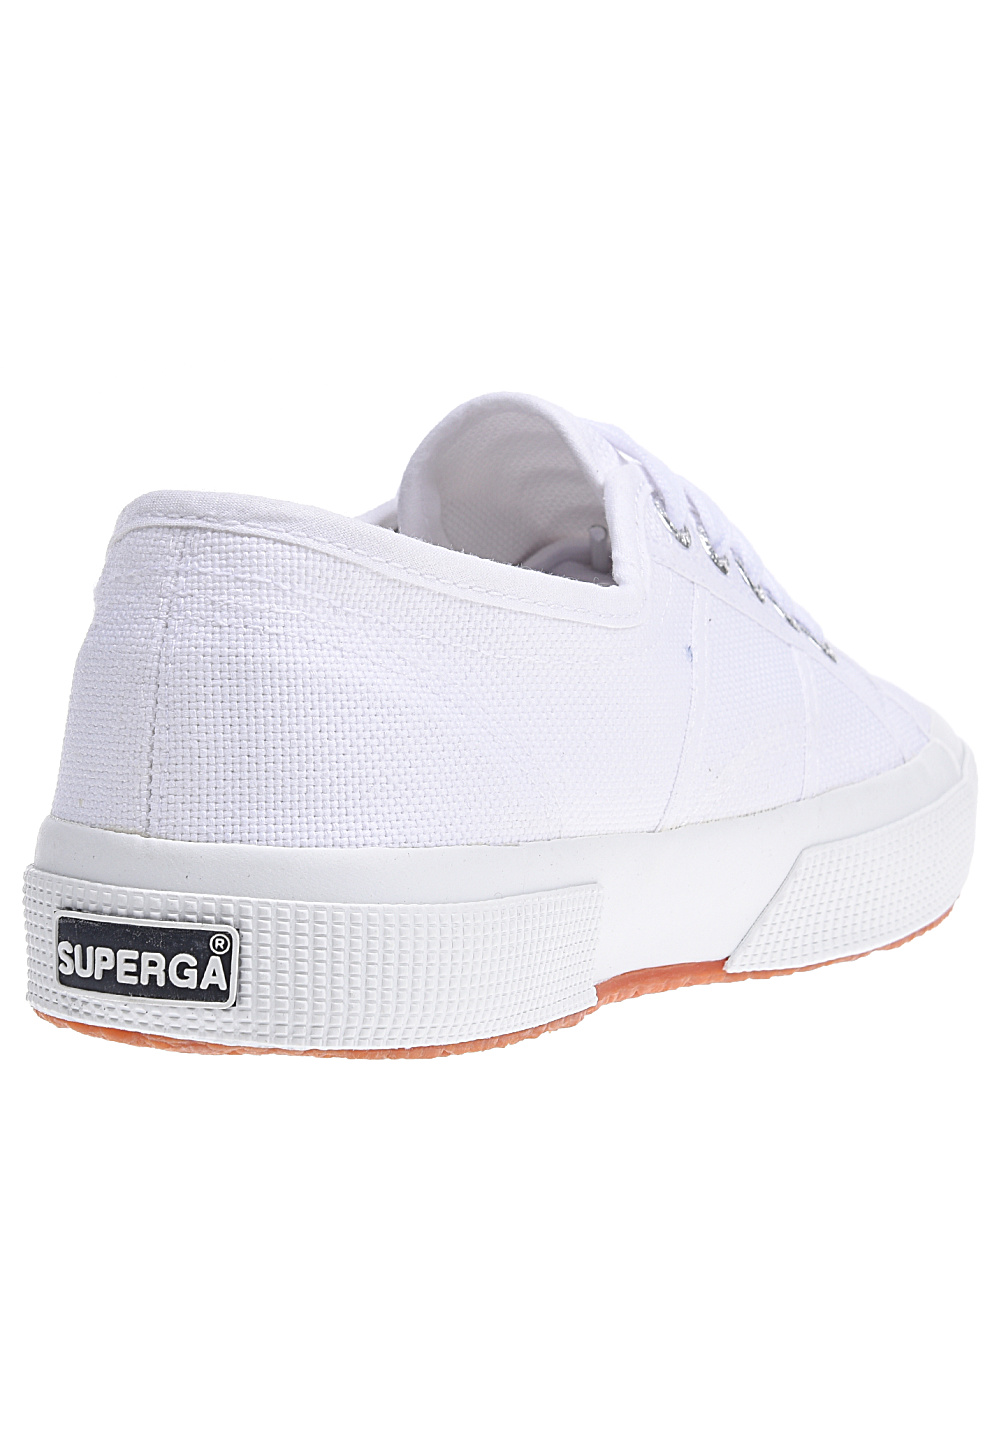 another chance 595fb b46c1 SUPERGA 2750-Cotu Classic - Sneakers - White